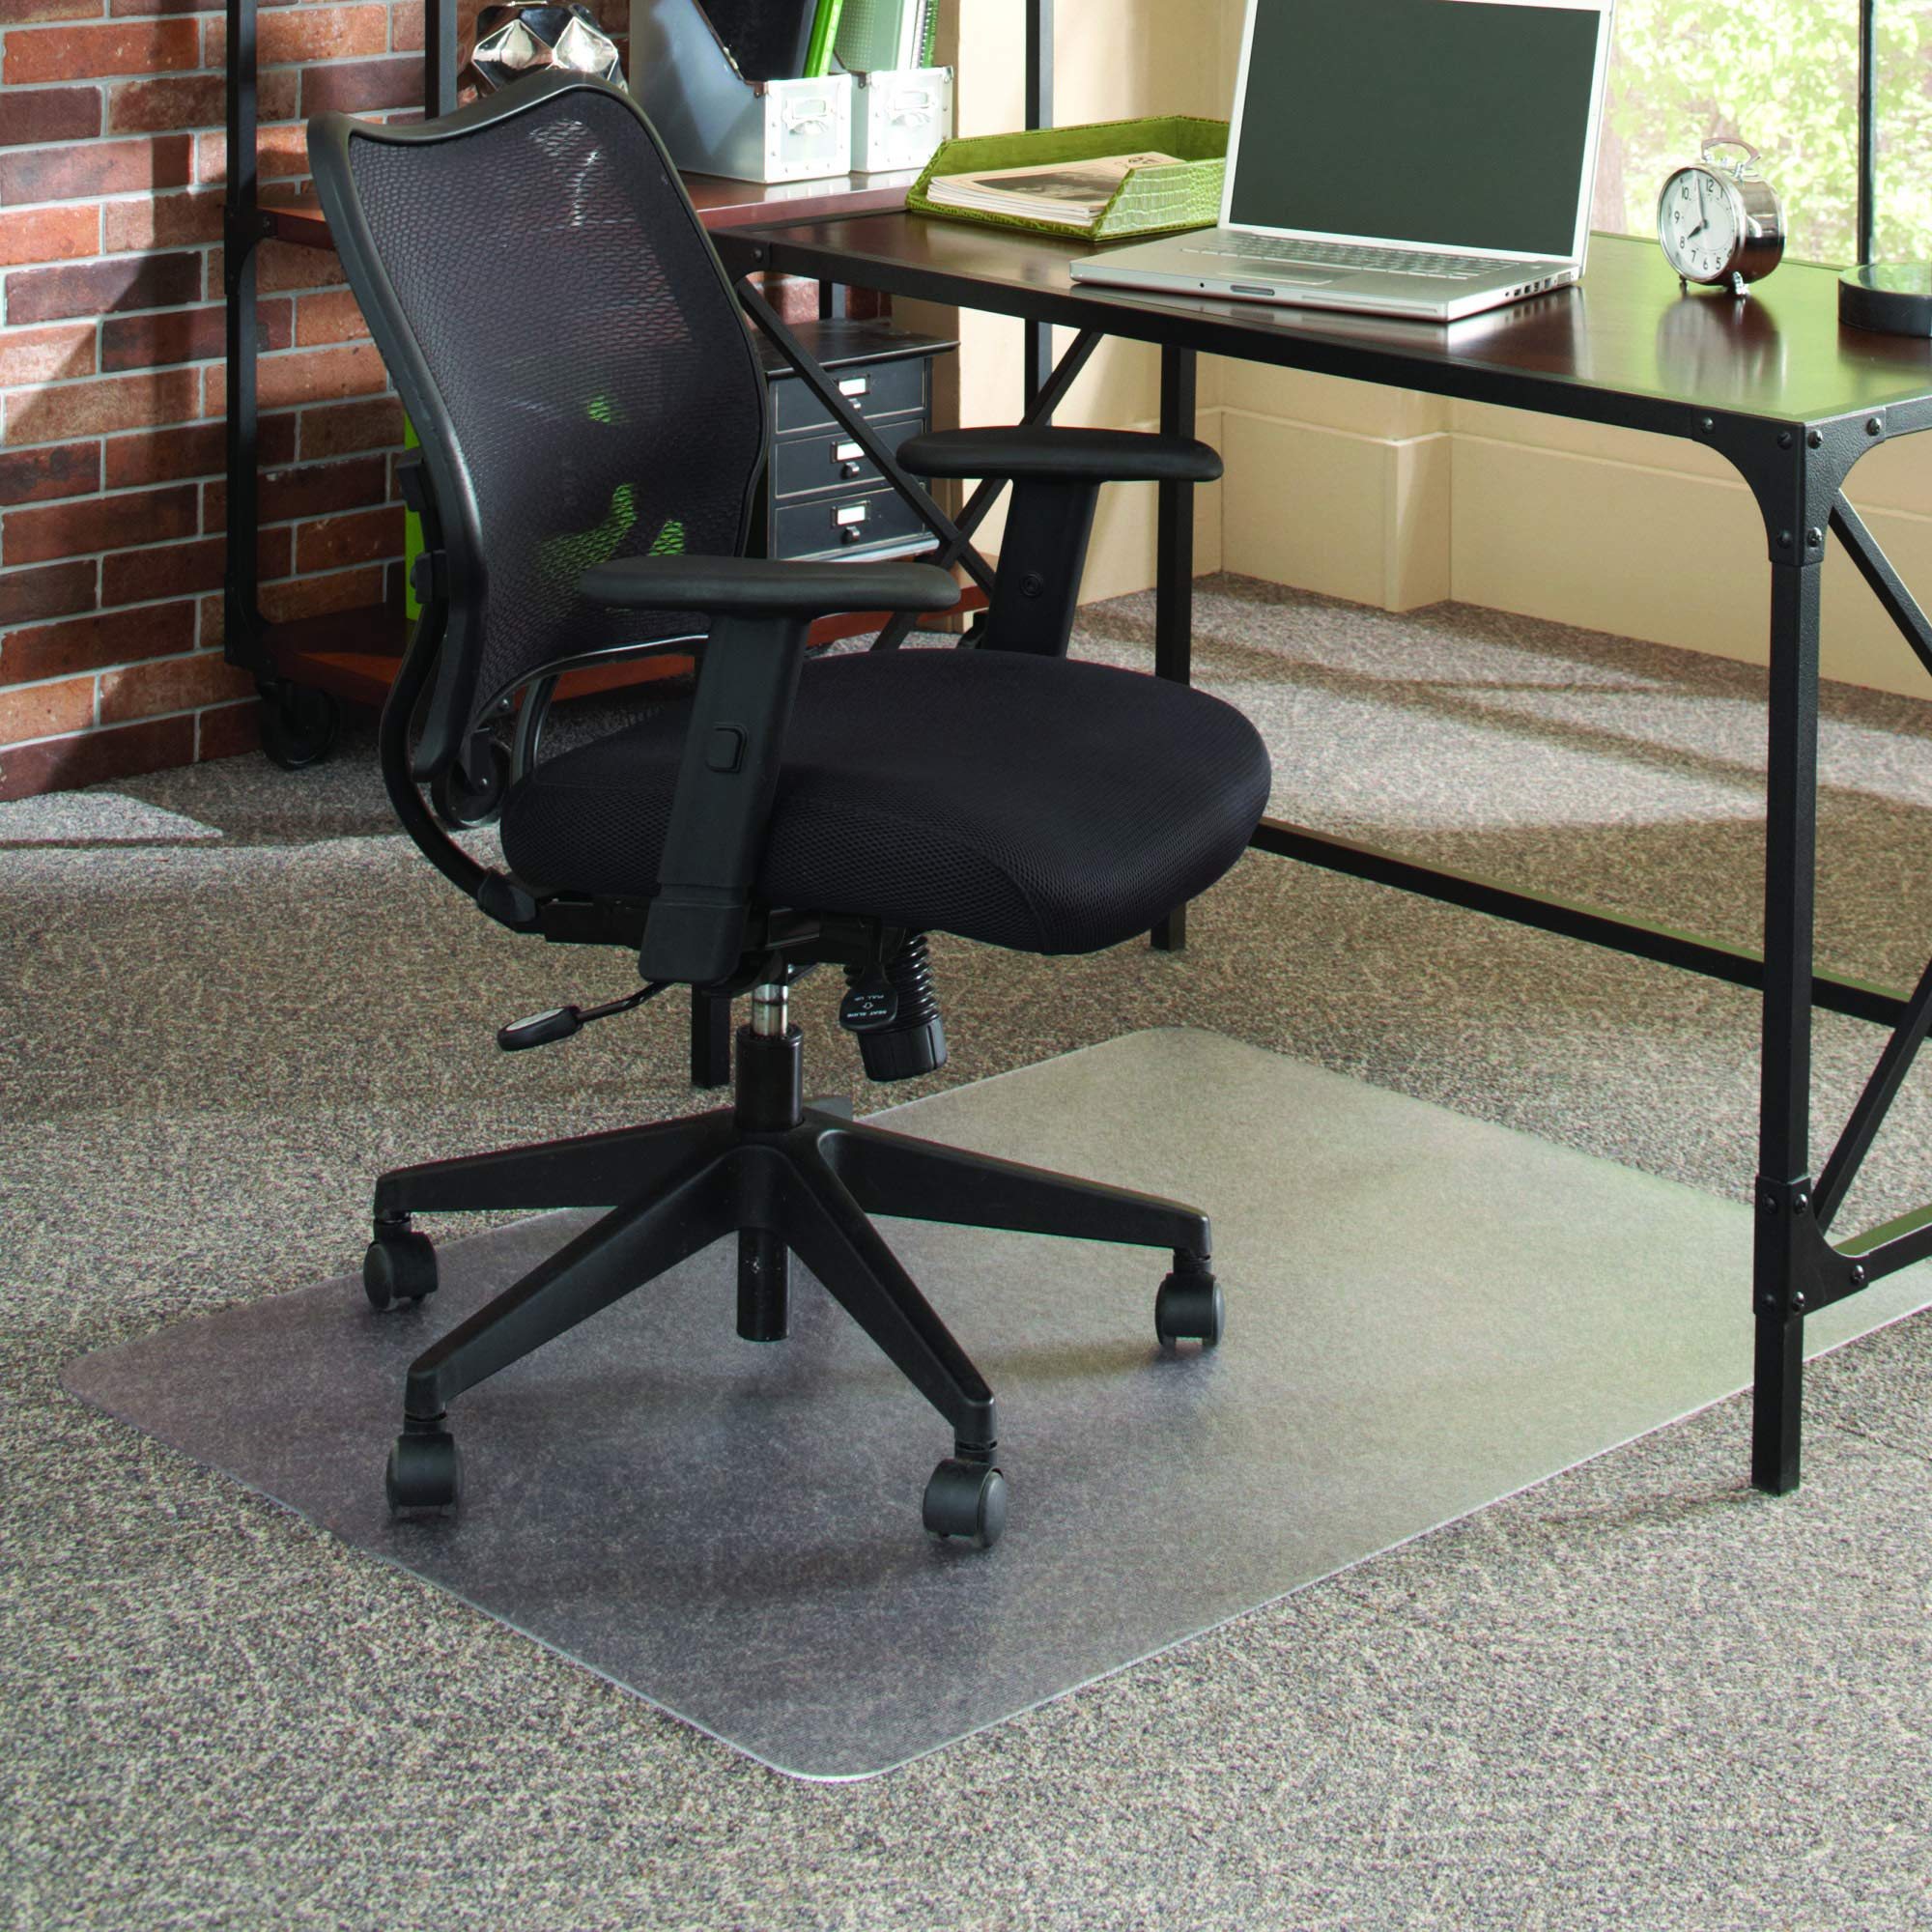 ES Robbins 121409 FloorMate Chair Mat Multi Surface, 36''x48'', Clear